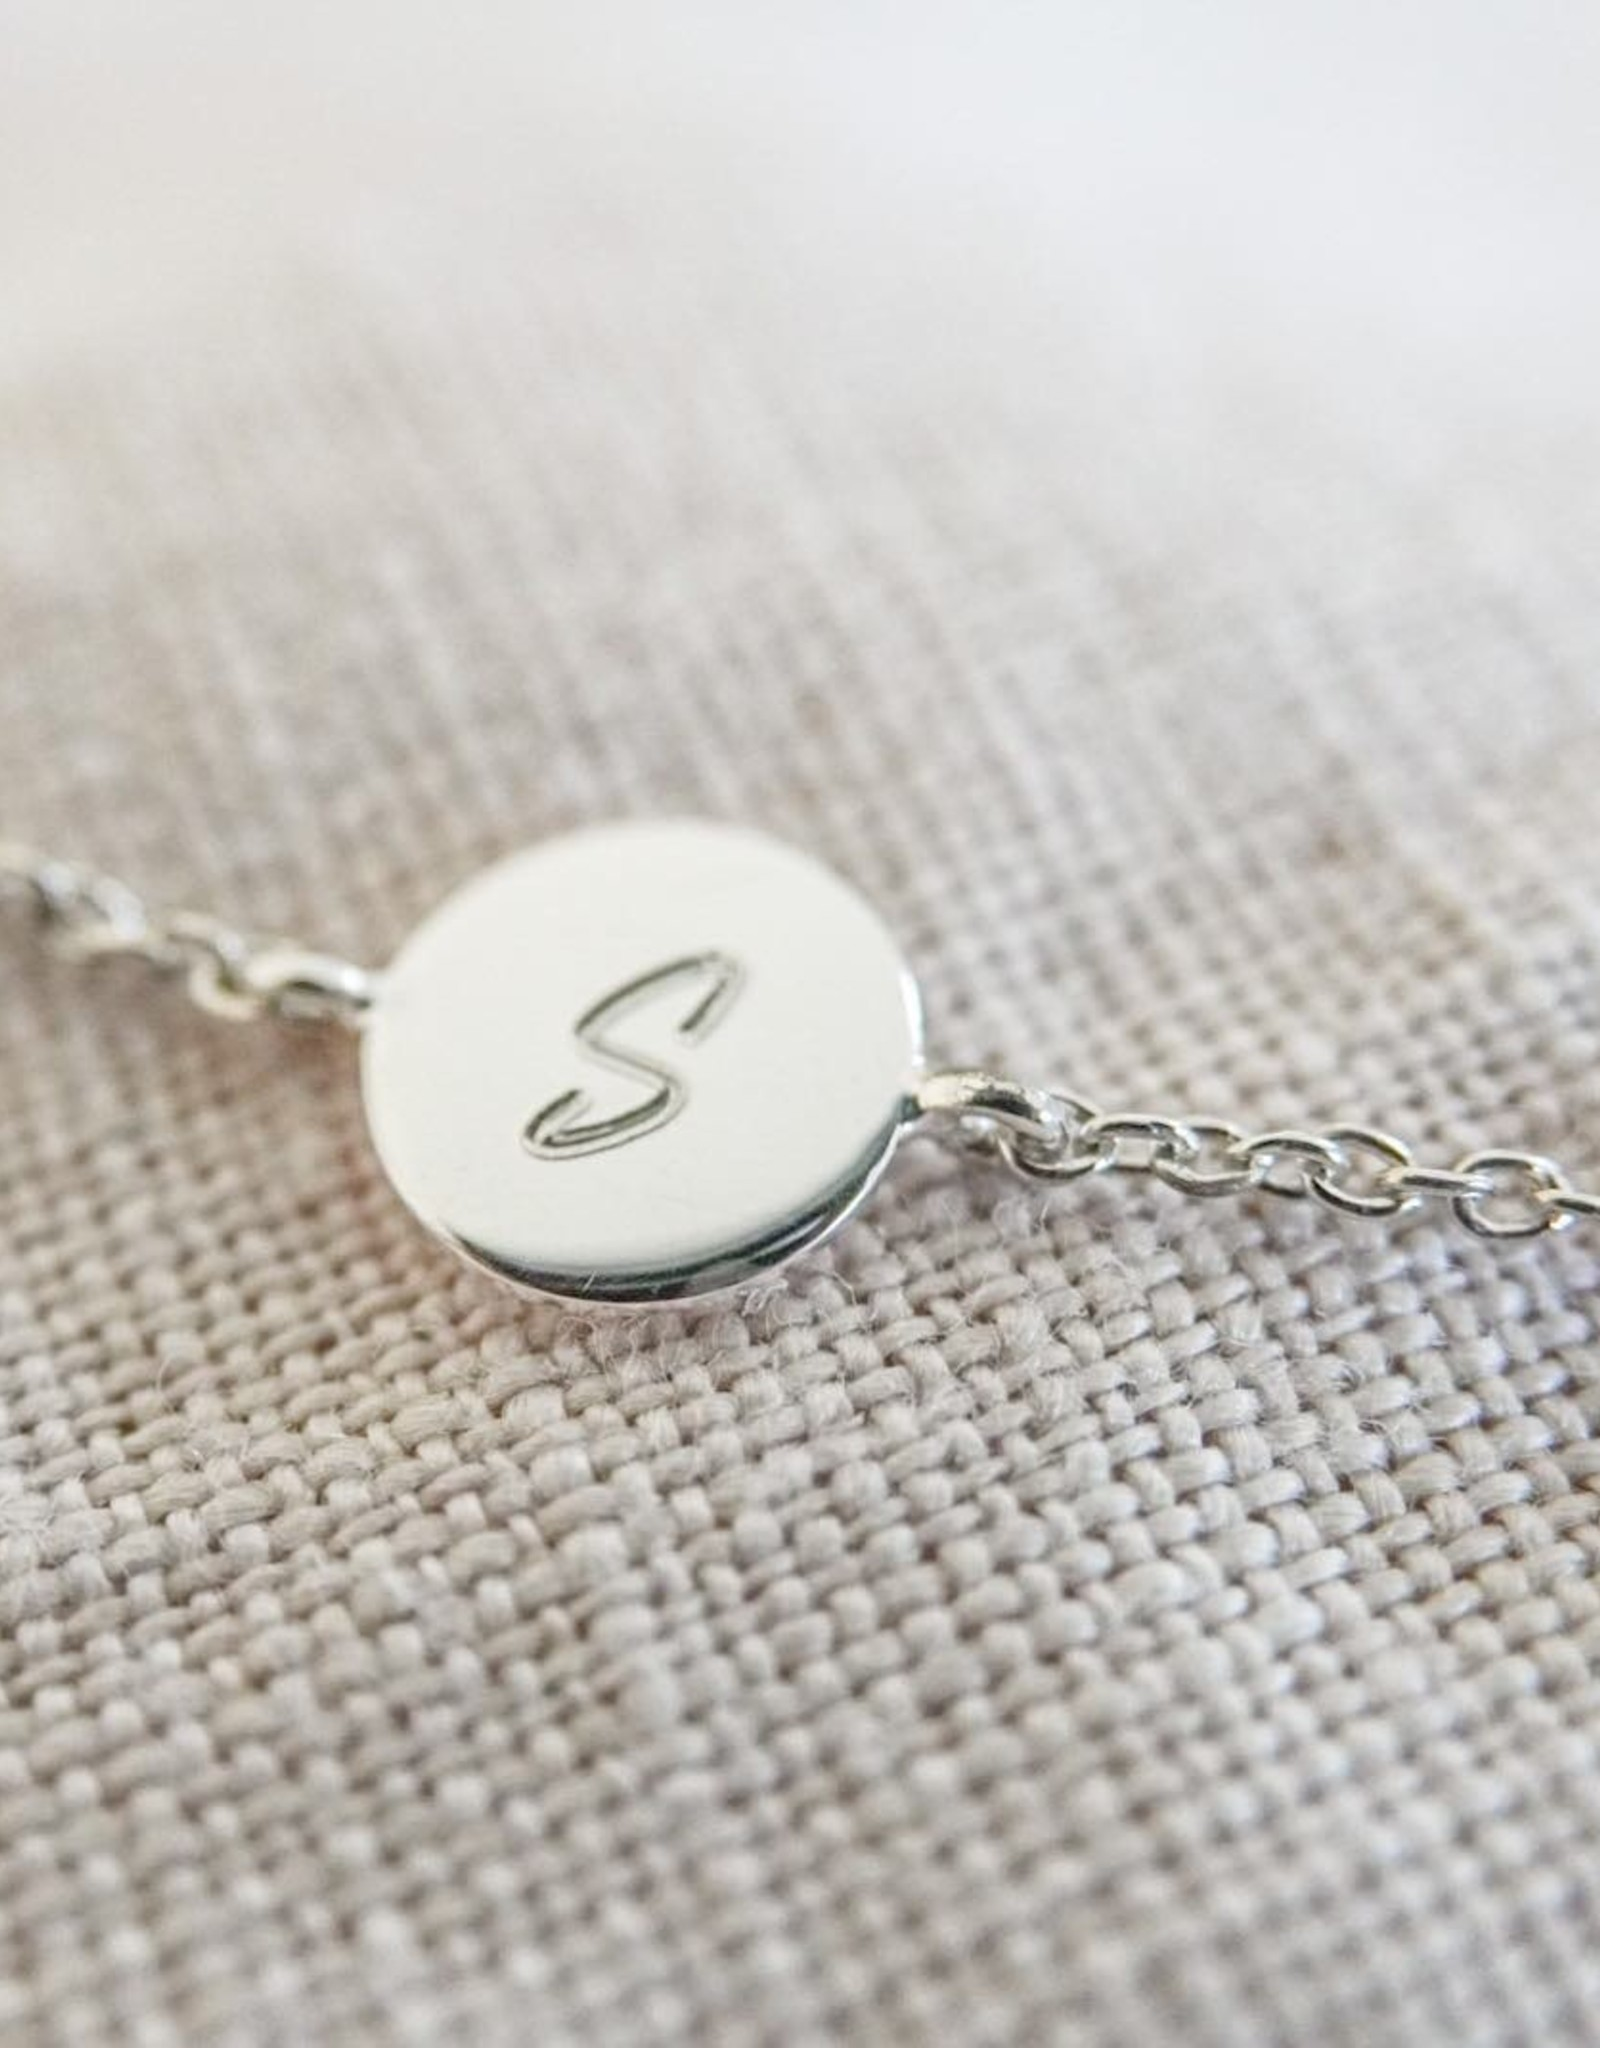 Bracelet with 1 charm from 65 euro